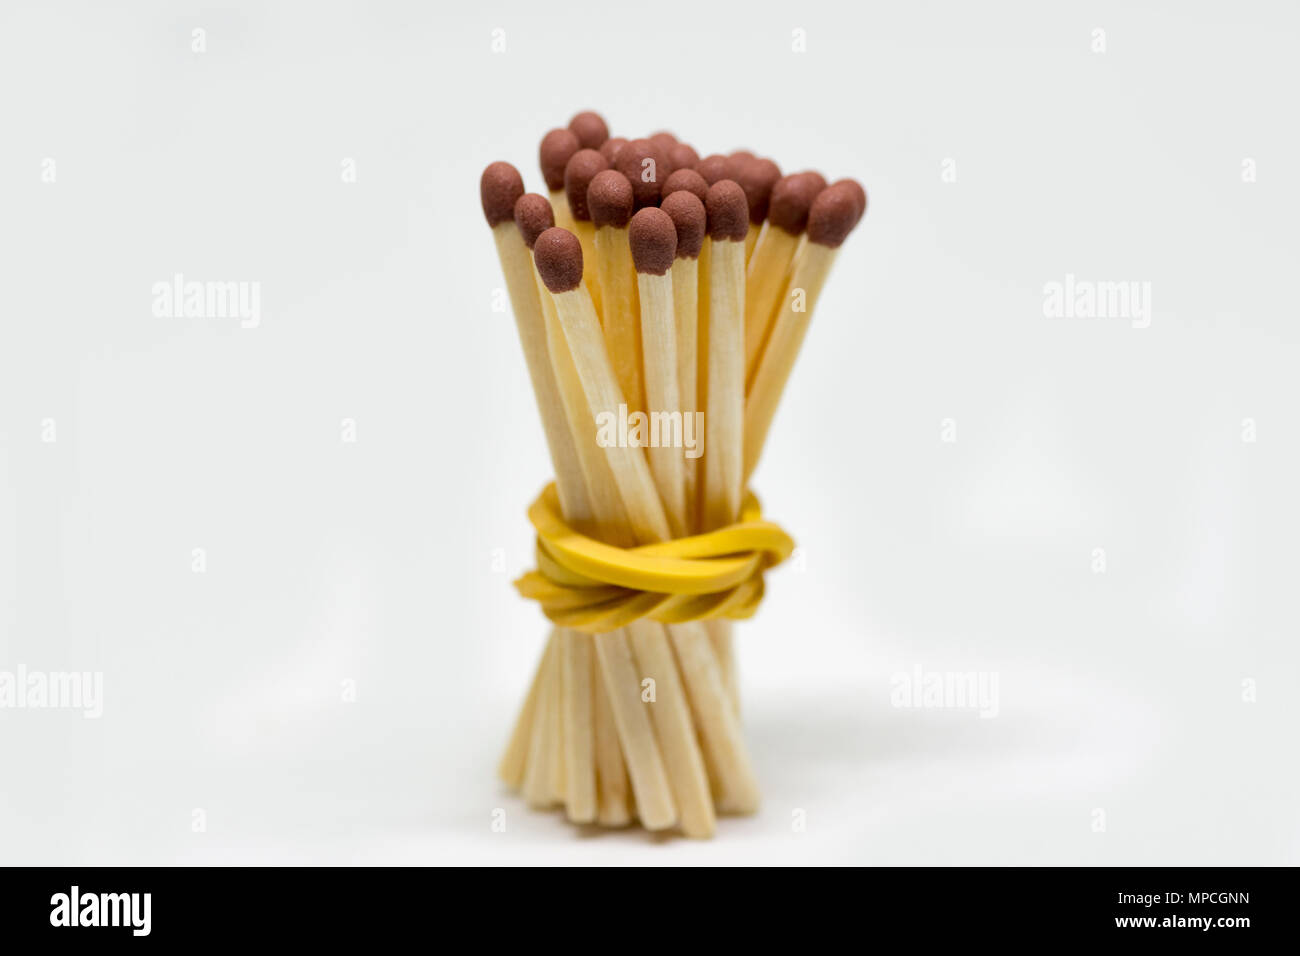 Wooden Matchstick Background - Stock Image